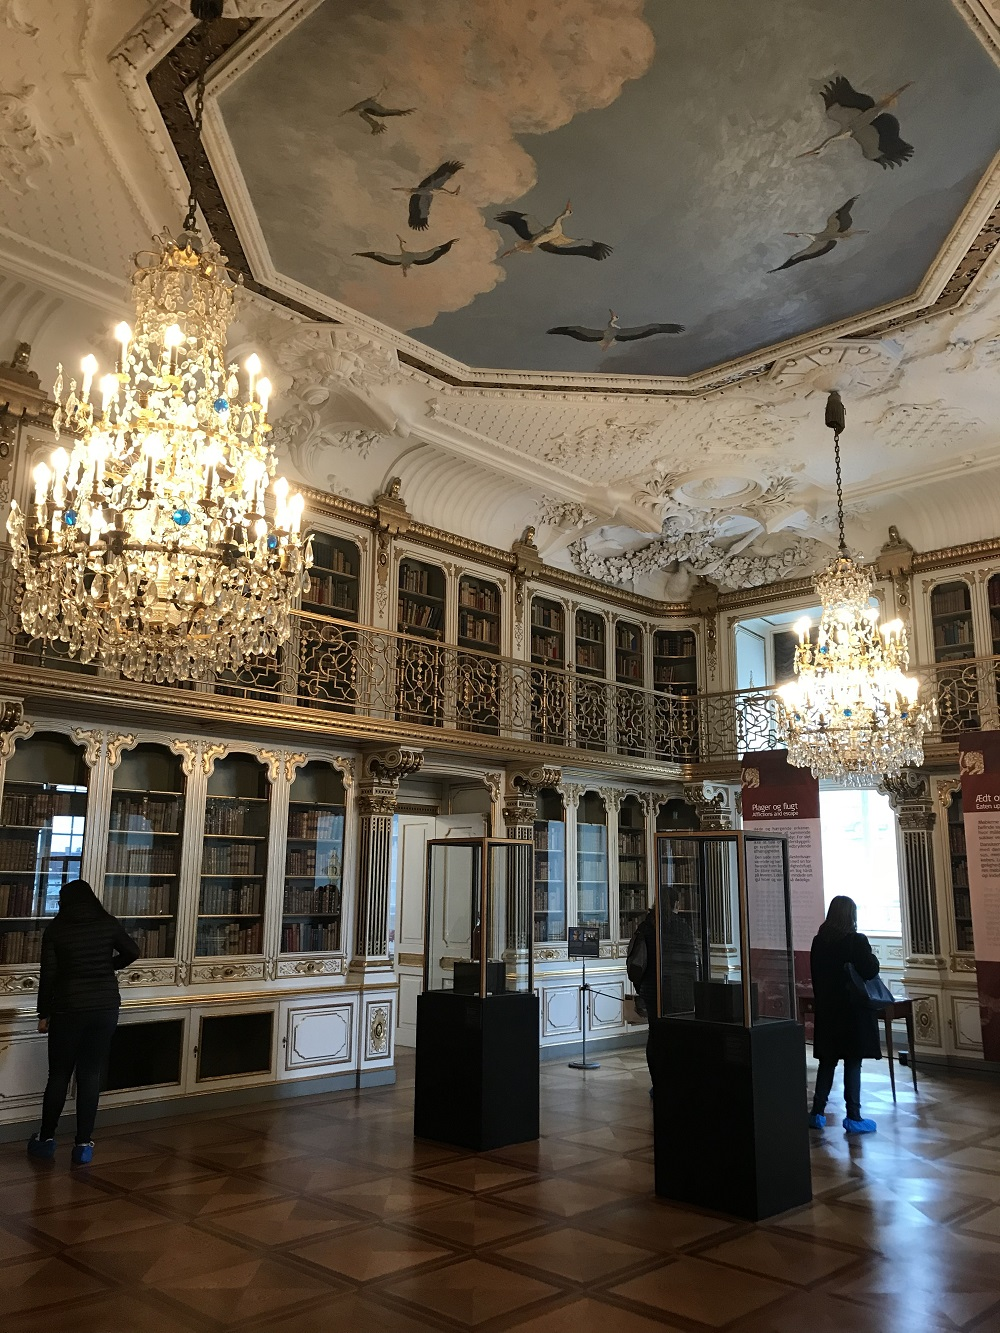 Christiansborg Palace Library